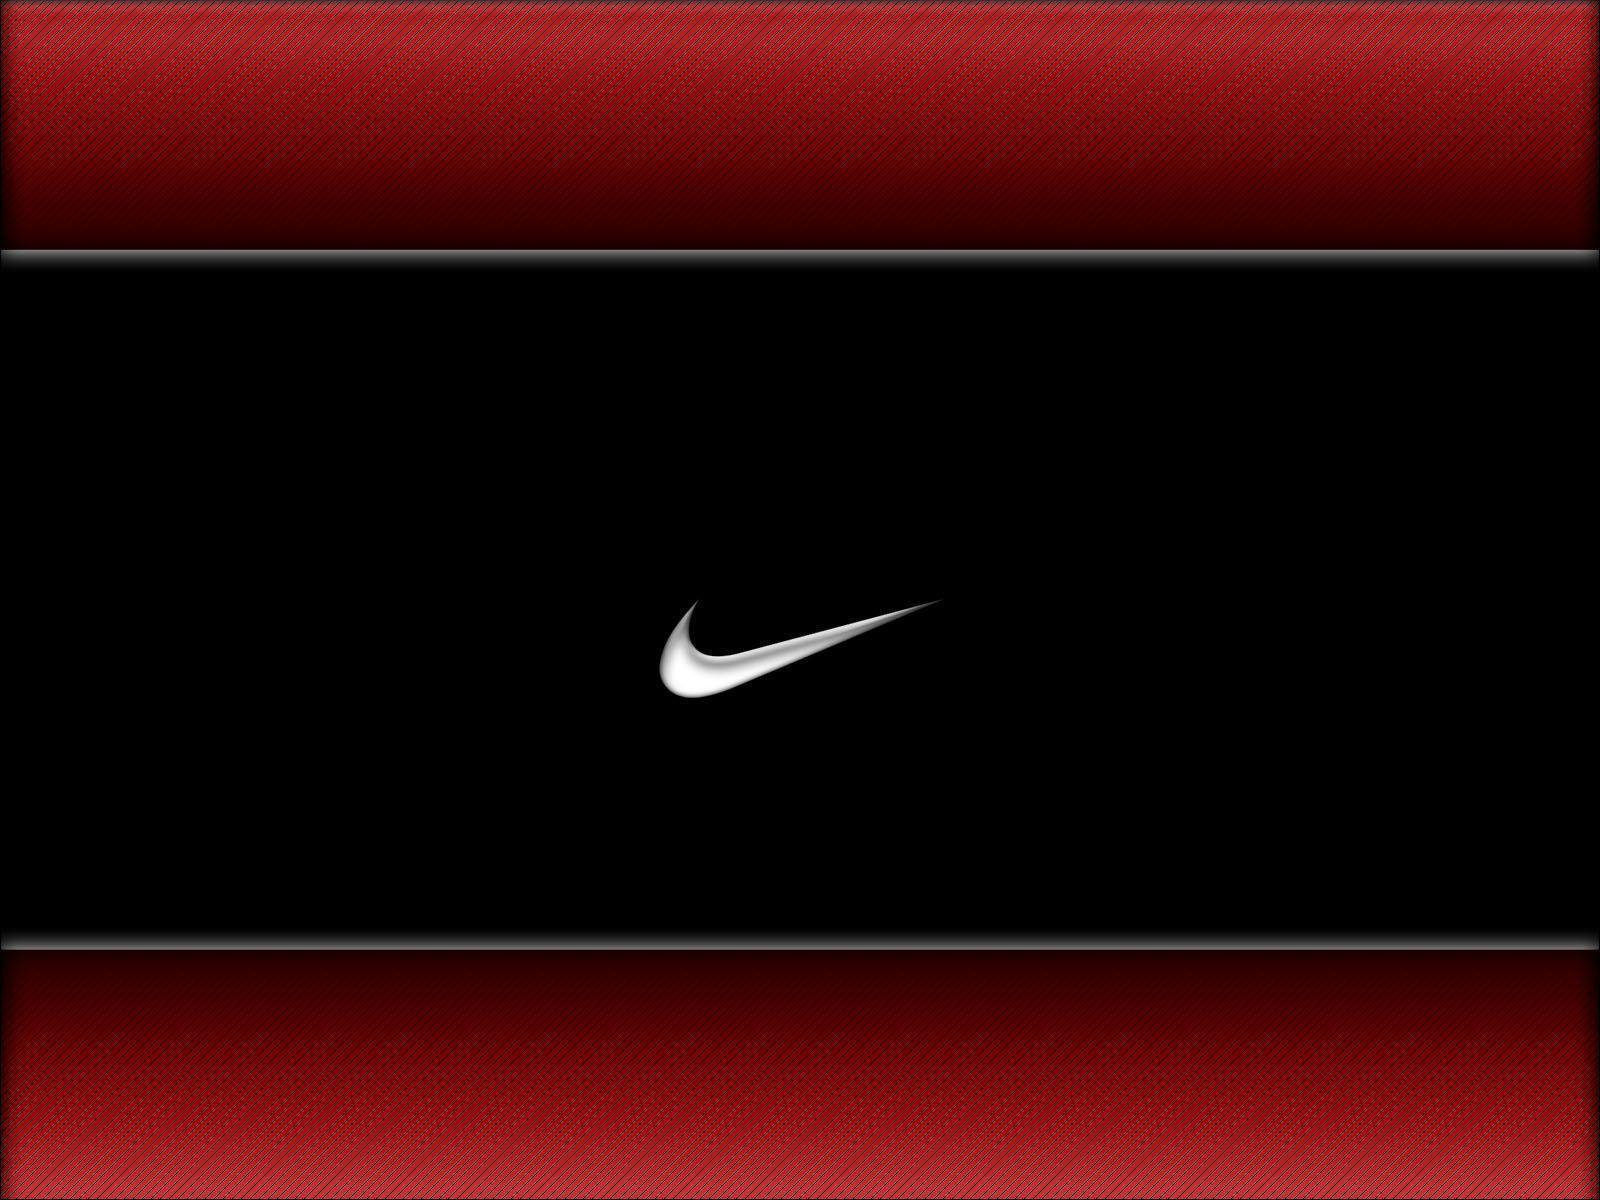 Nike Swoosh Wallpapers: Nike Logo Pictures Wallpapers